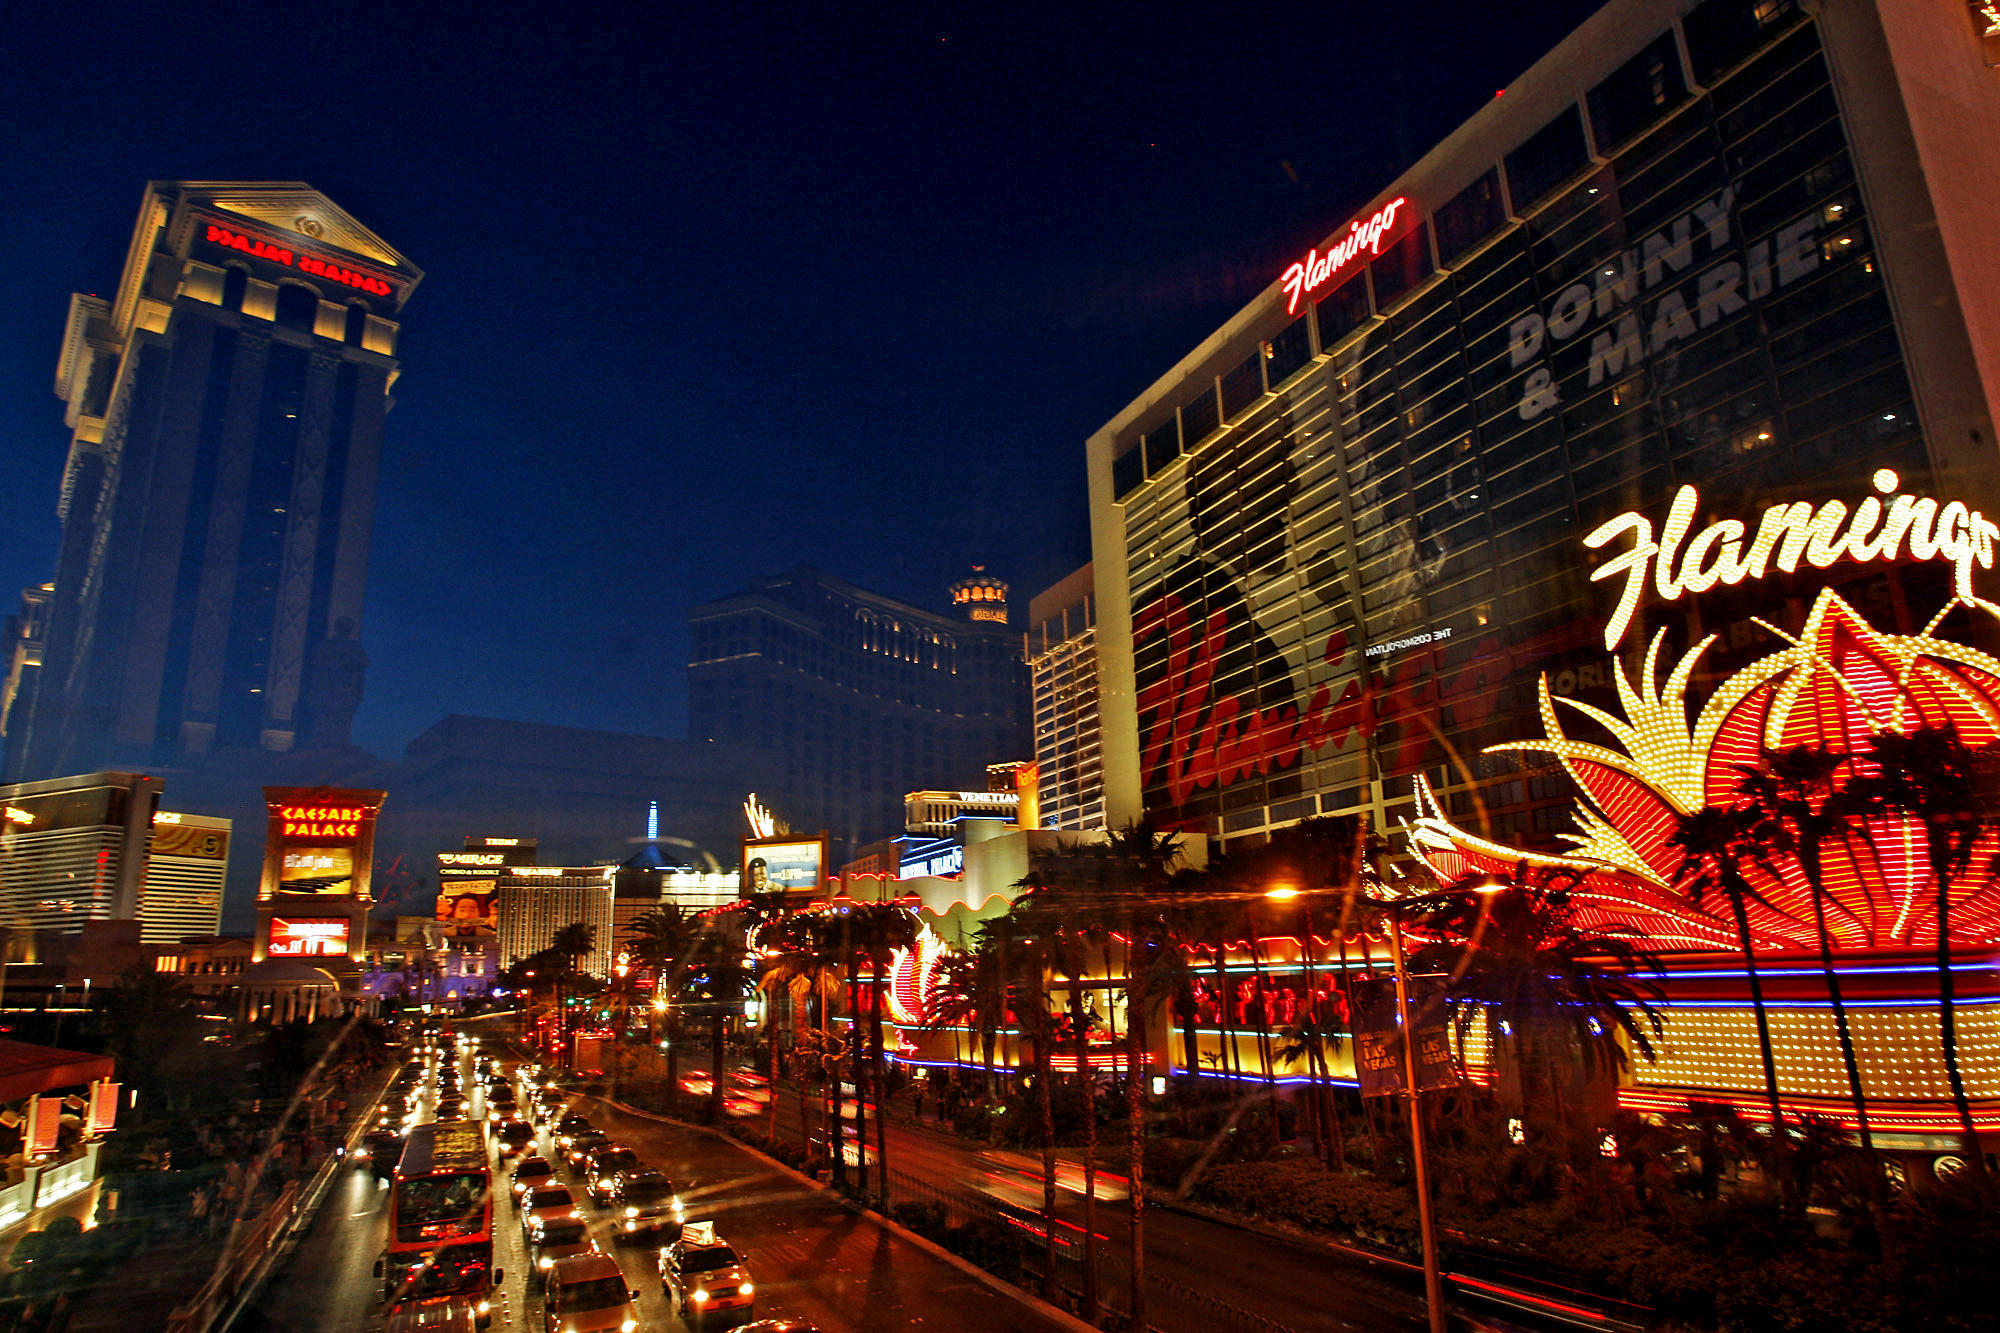 Las Vegas is one of six finalists bidding for the chance to host the 2016 Republican National Convention